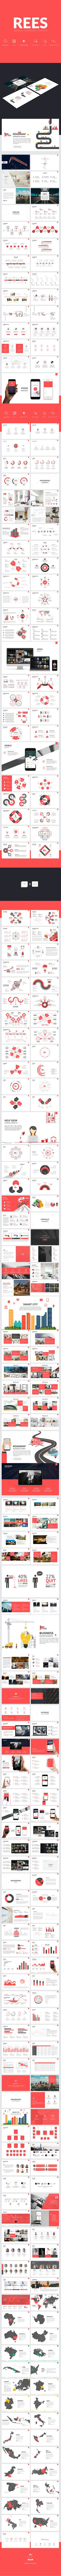 Buy Rees Business Powerpoint Template by afomindia on GraphicRiver. Limited Time Offer: Arc – Animated Presentation Template What's Included: Best Powerpoint Presentations, Business Powerpoint Templates, Powerpoint Presentation Templates, Keynote Template, Keynote Presentation, Presentation Slides, Presentation Design, Keynote Design, Ppt Design